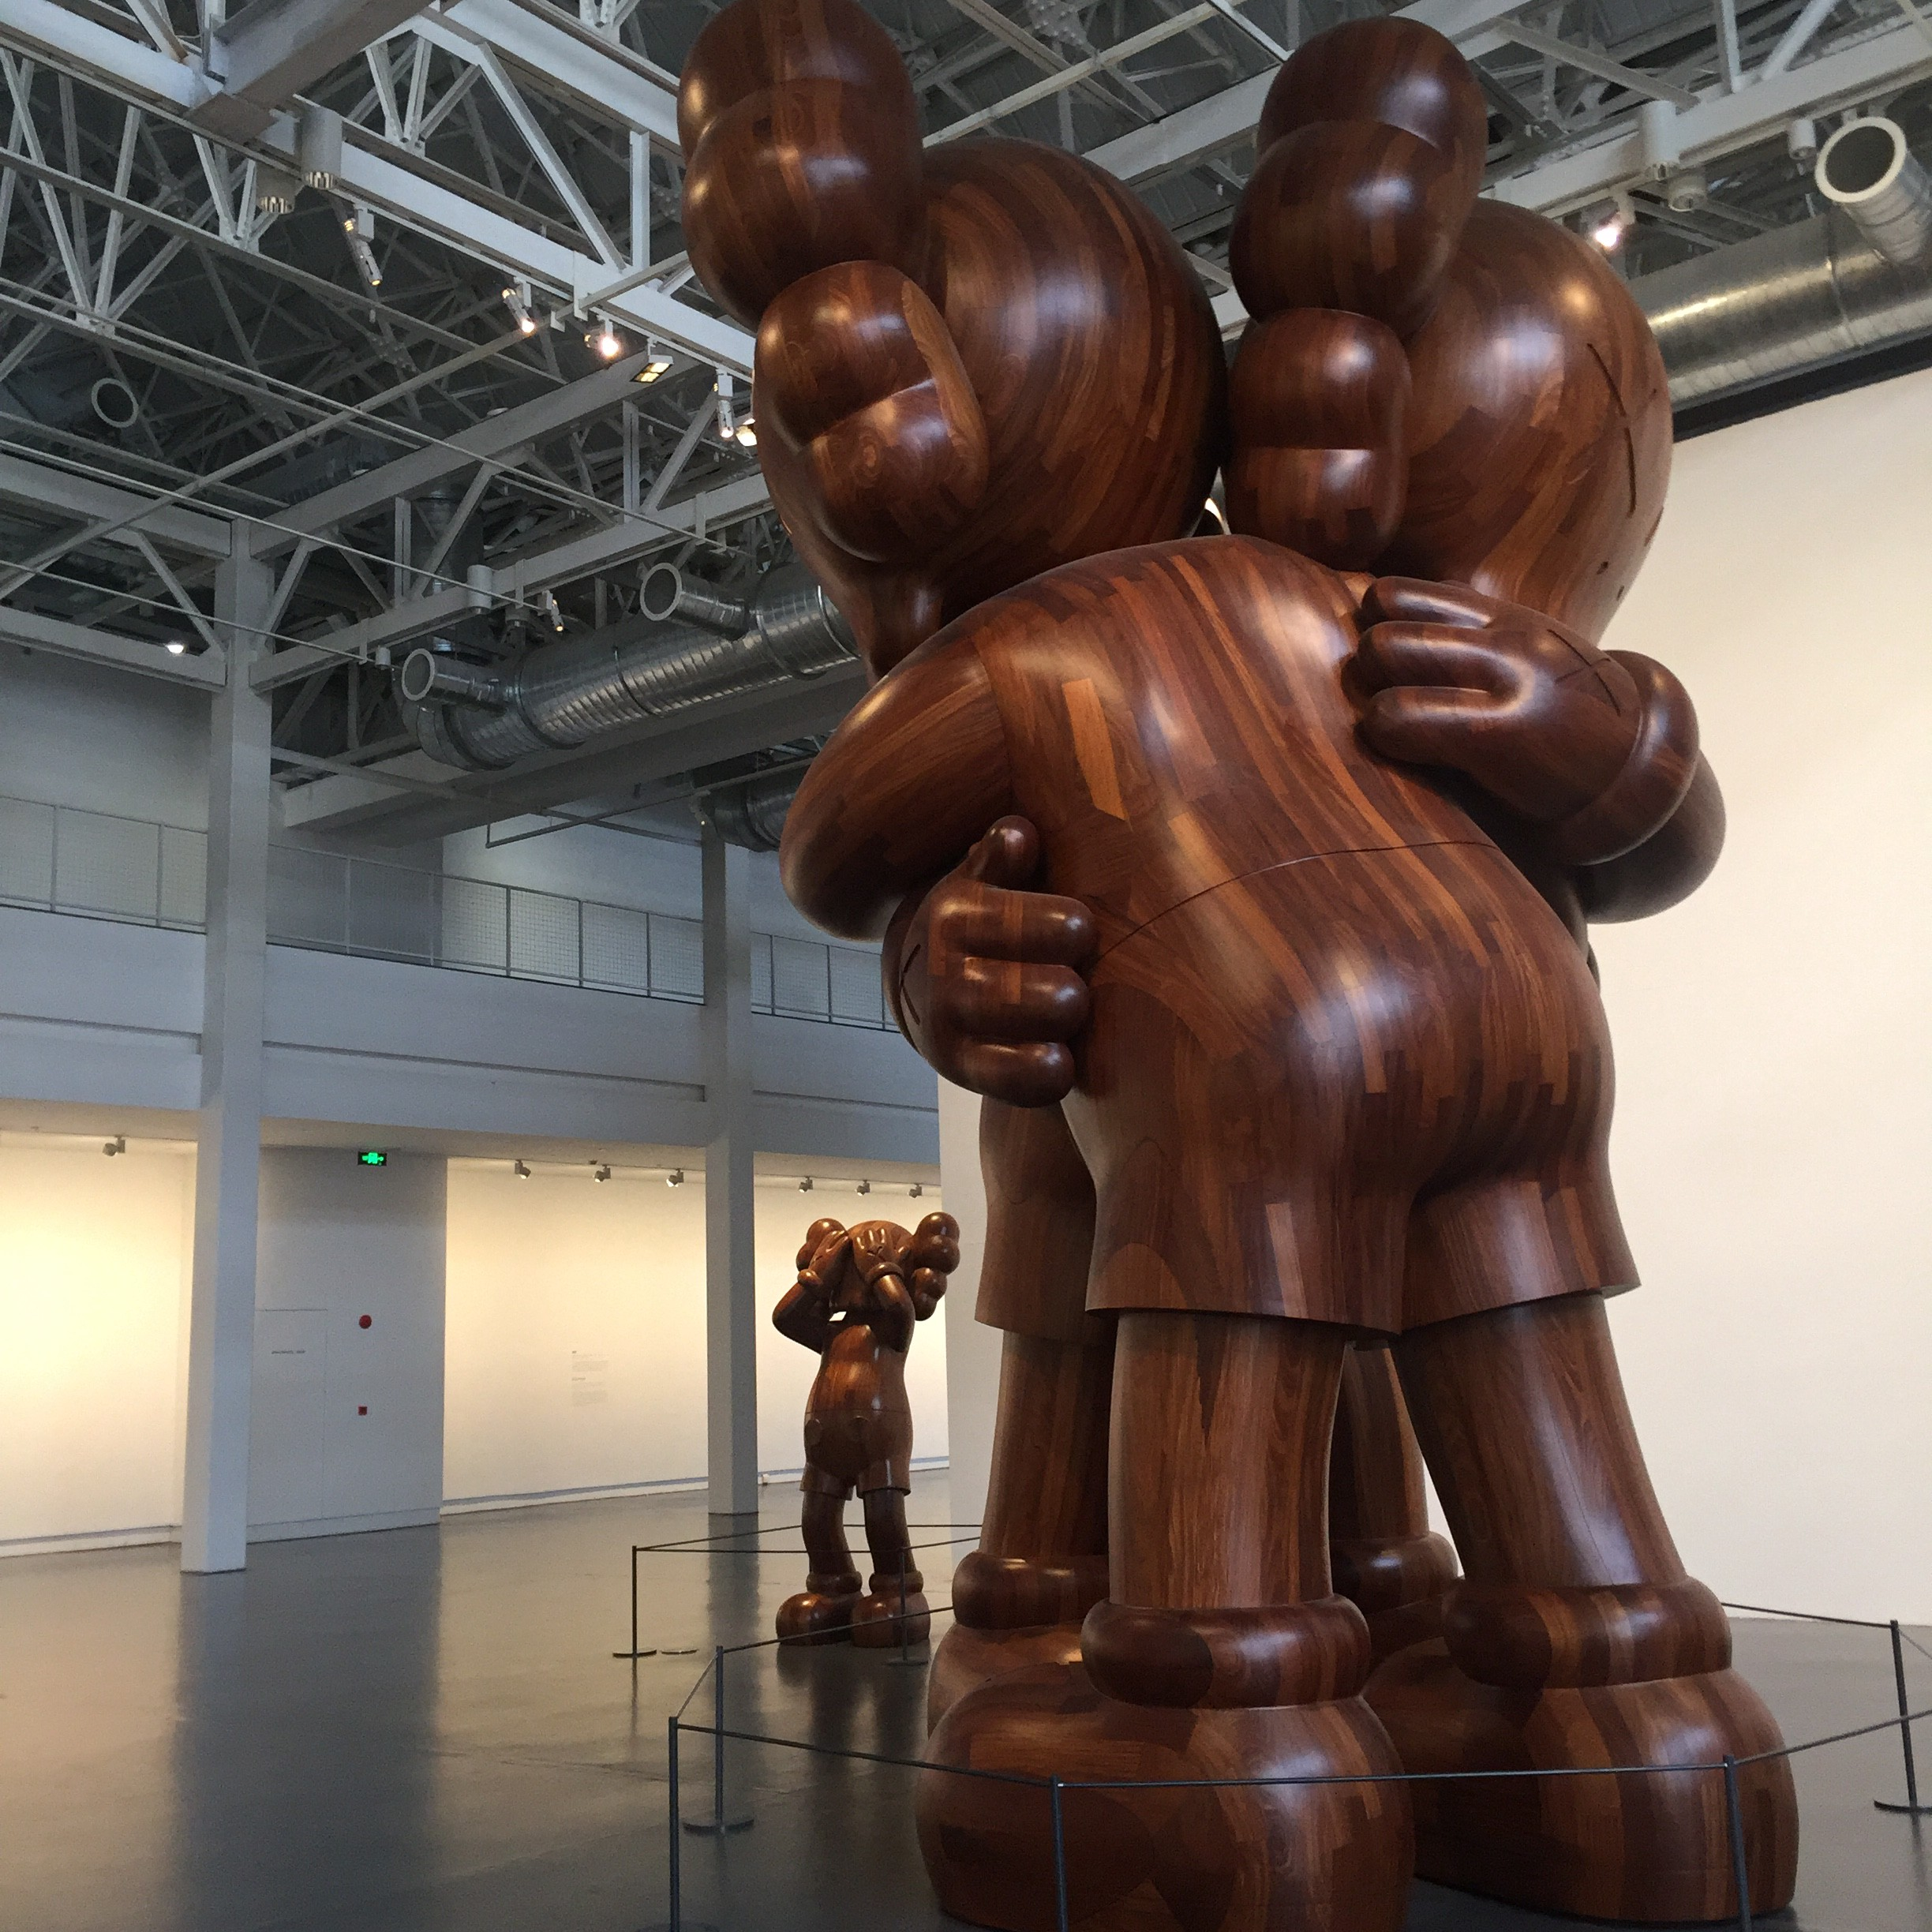 10 Things You Probably Didn't Know About KAWS kaws 10 Things You Probably Didn't Know About KAWS 10 Things You Probably Didnt Know About KAWS 1